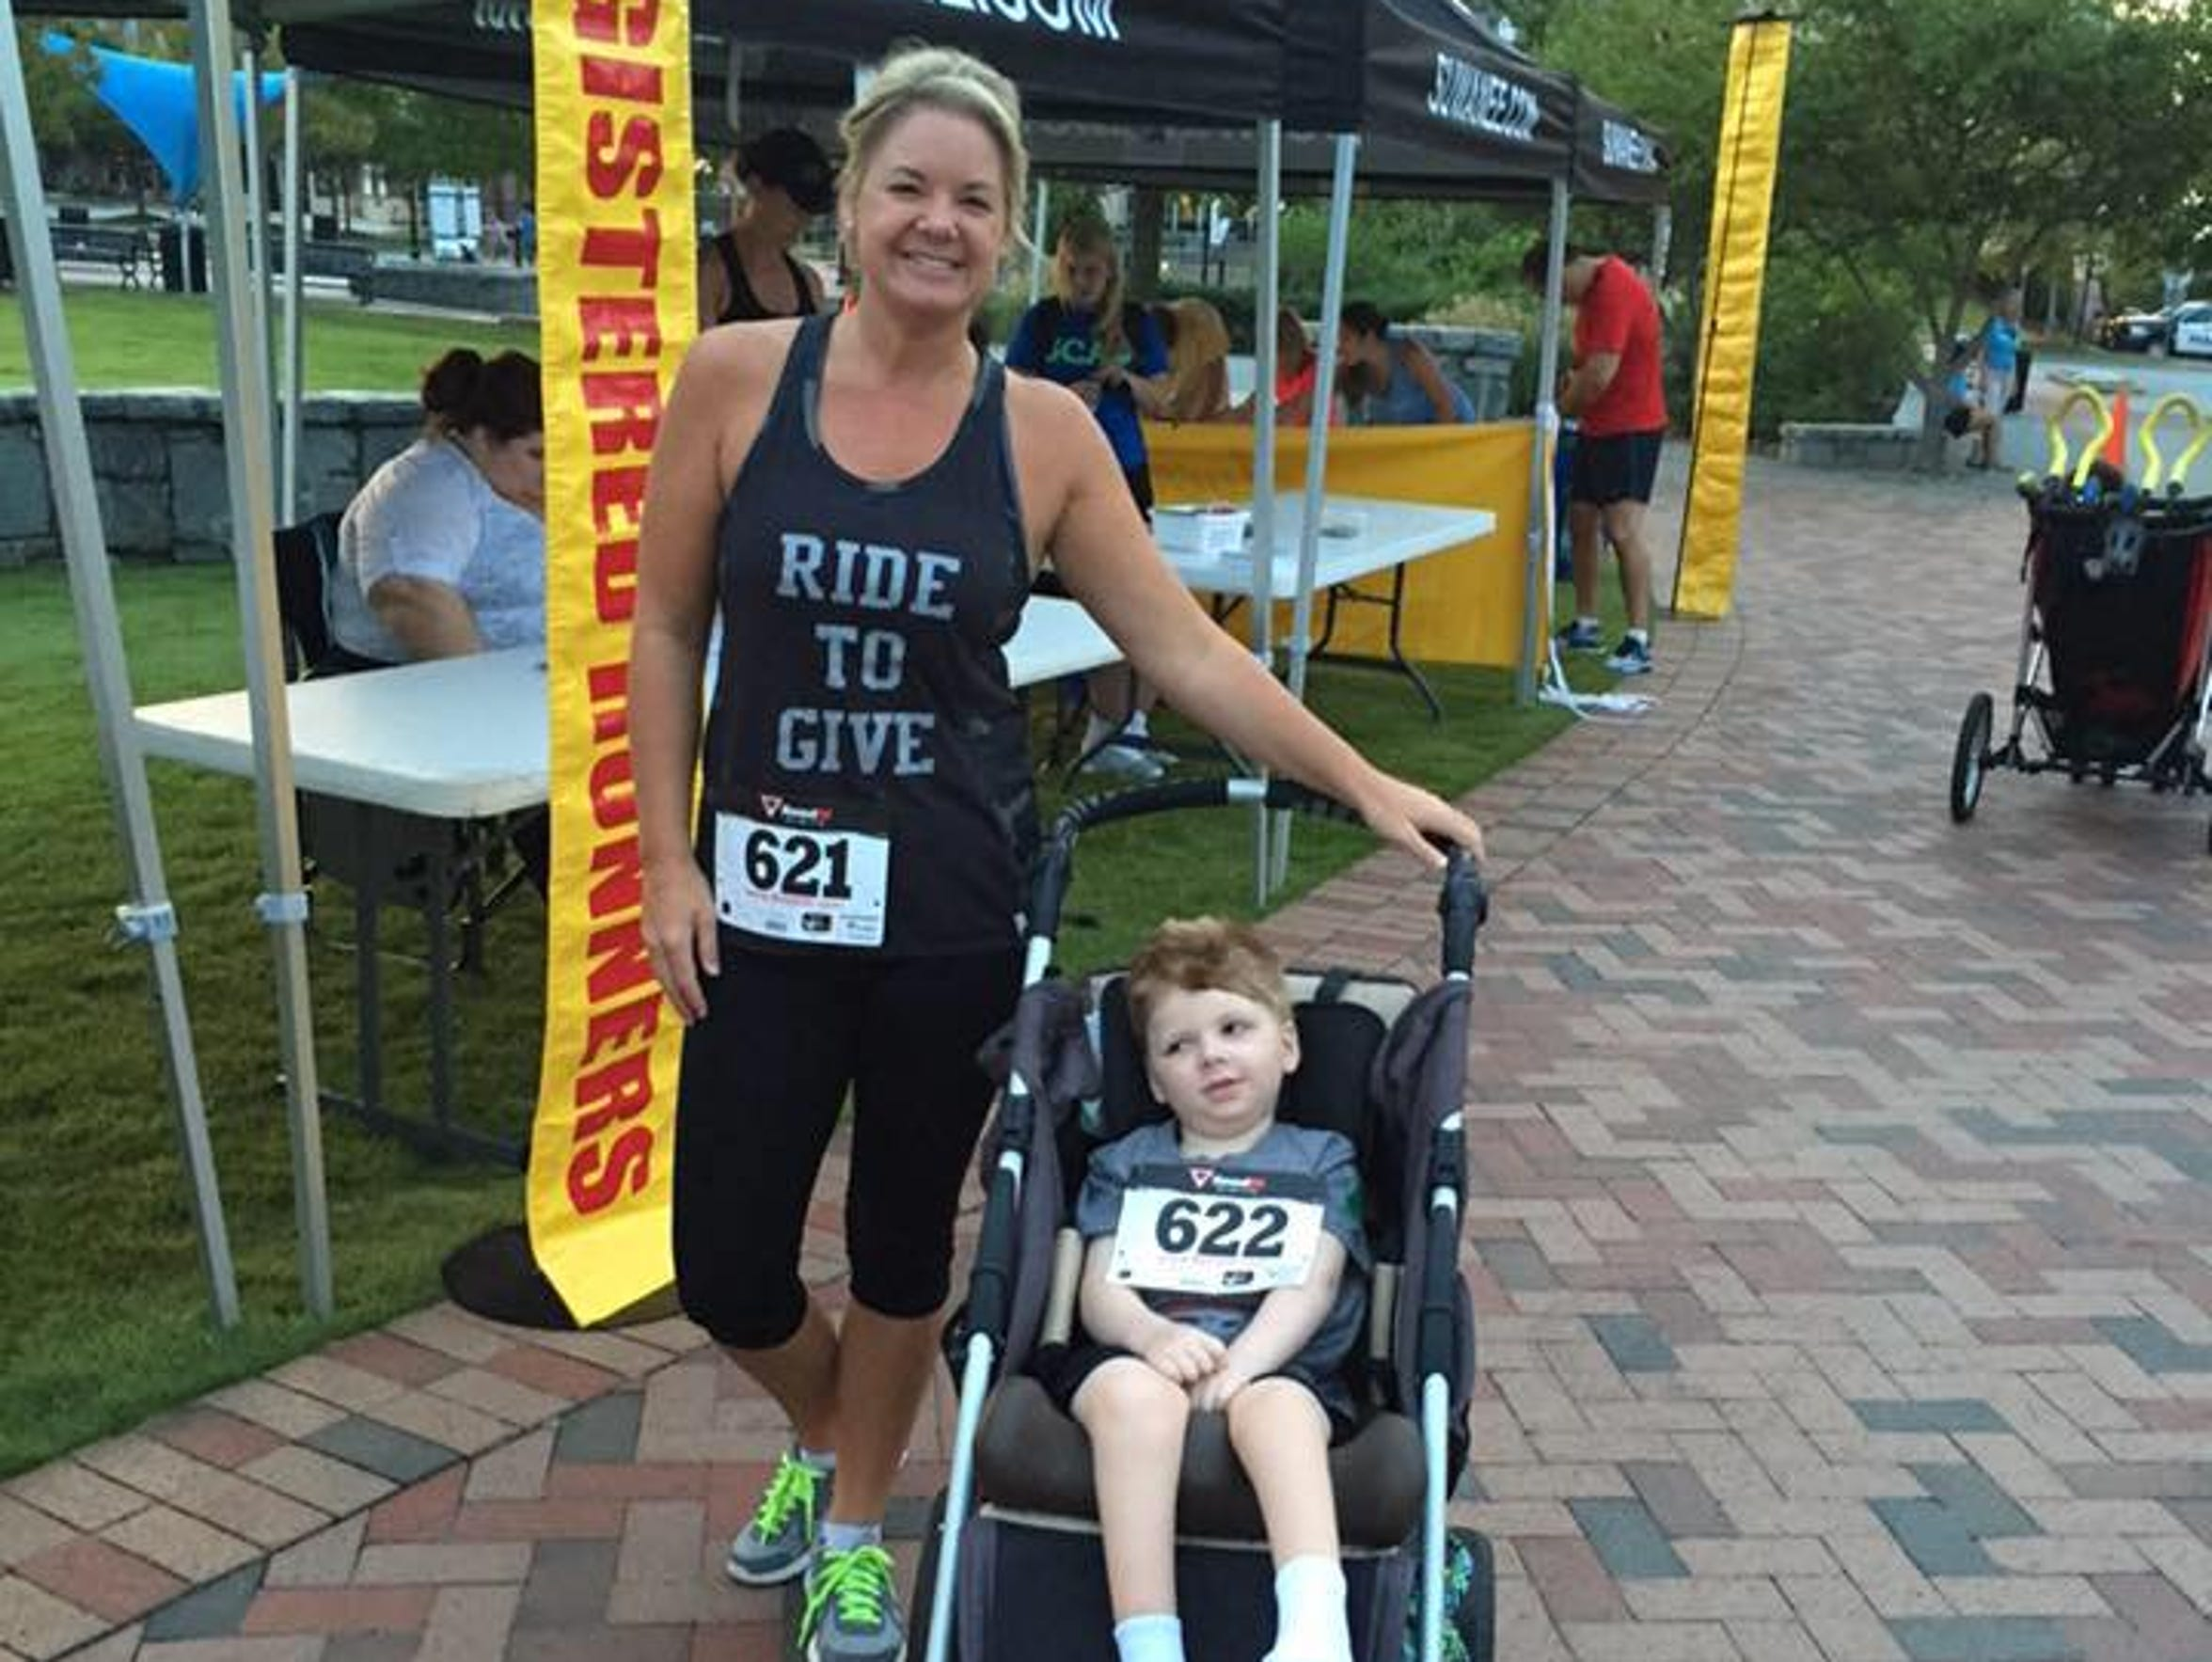 Stacy and Tripp, at a Ride to Give event.